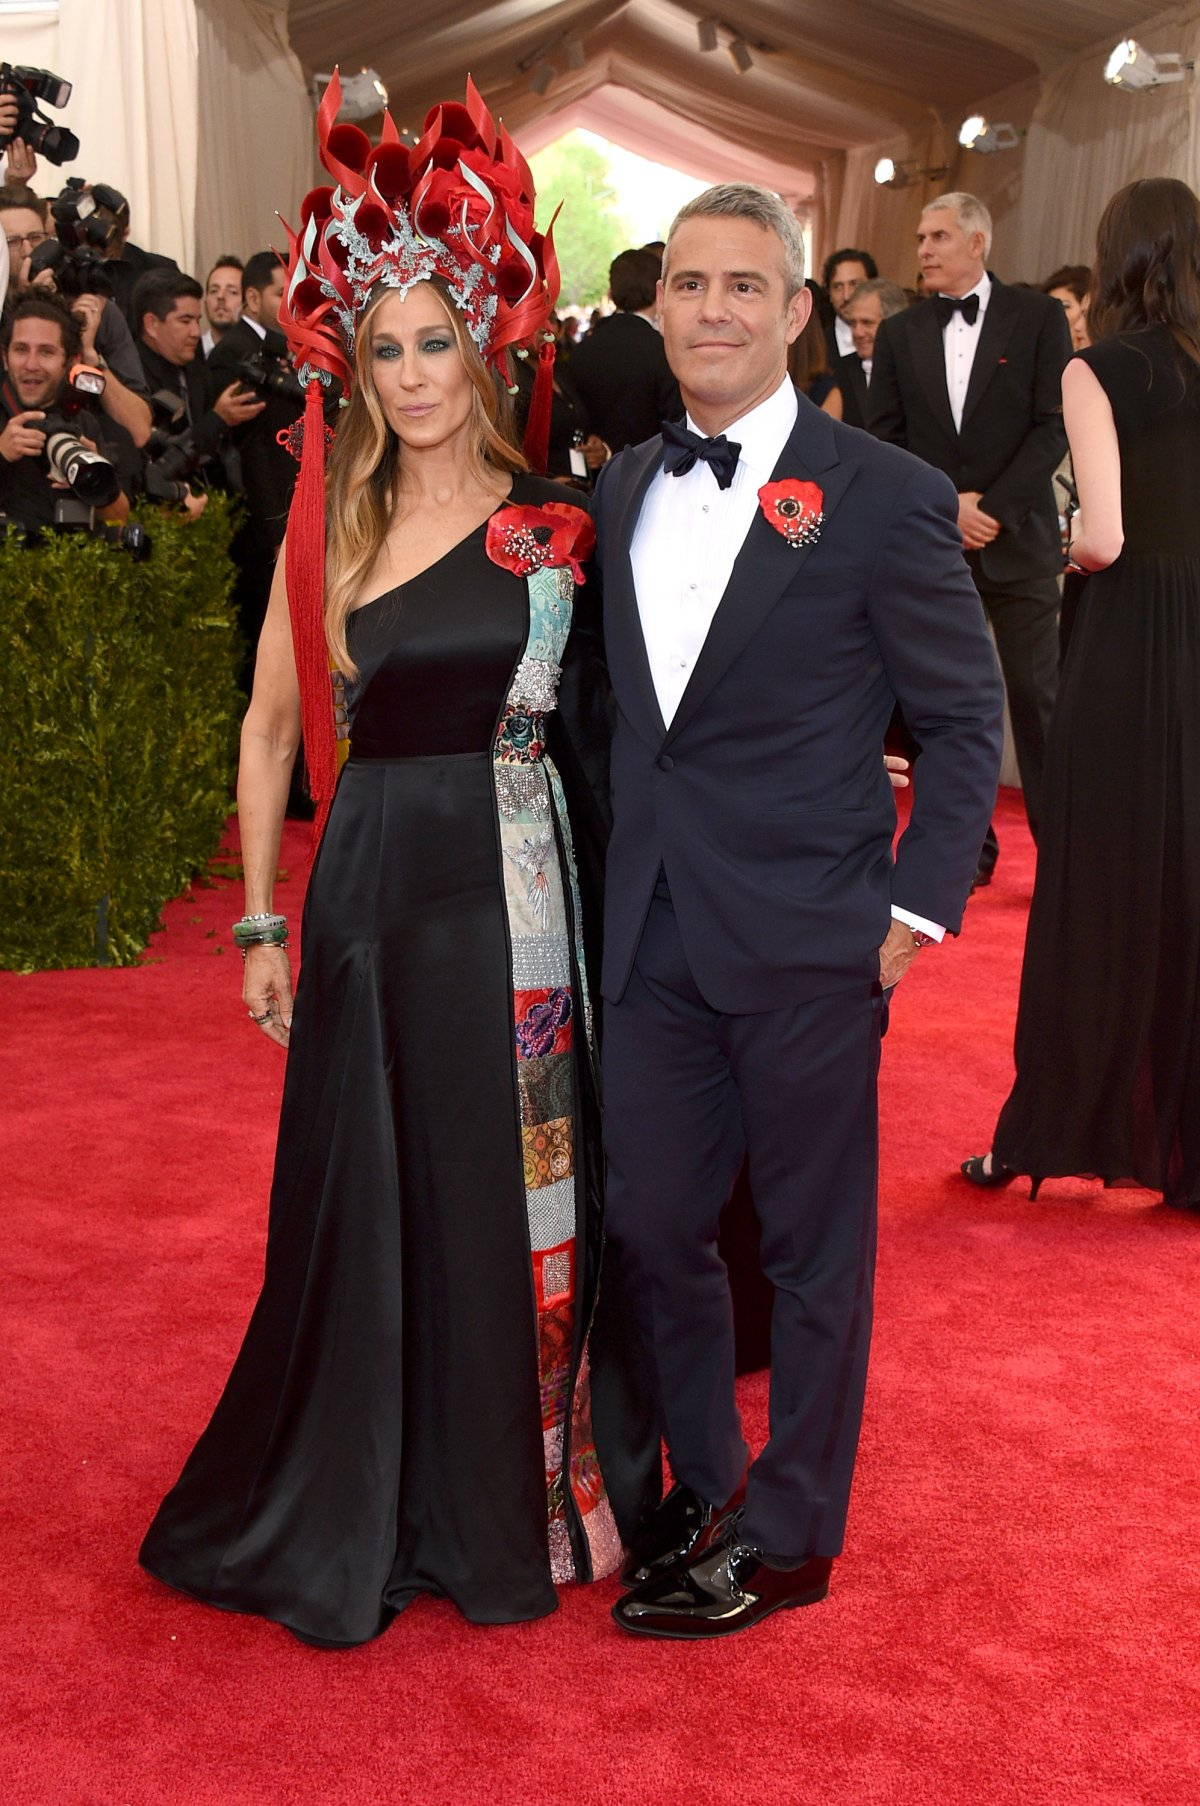 SARAH JESSICA PARKER in H&M with a PHILIP TREACY headpiece and SJP COLLECTION shoes, with ANDY COHEN